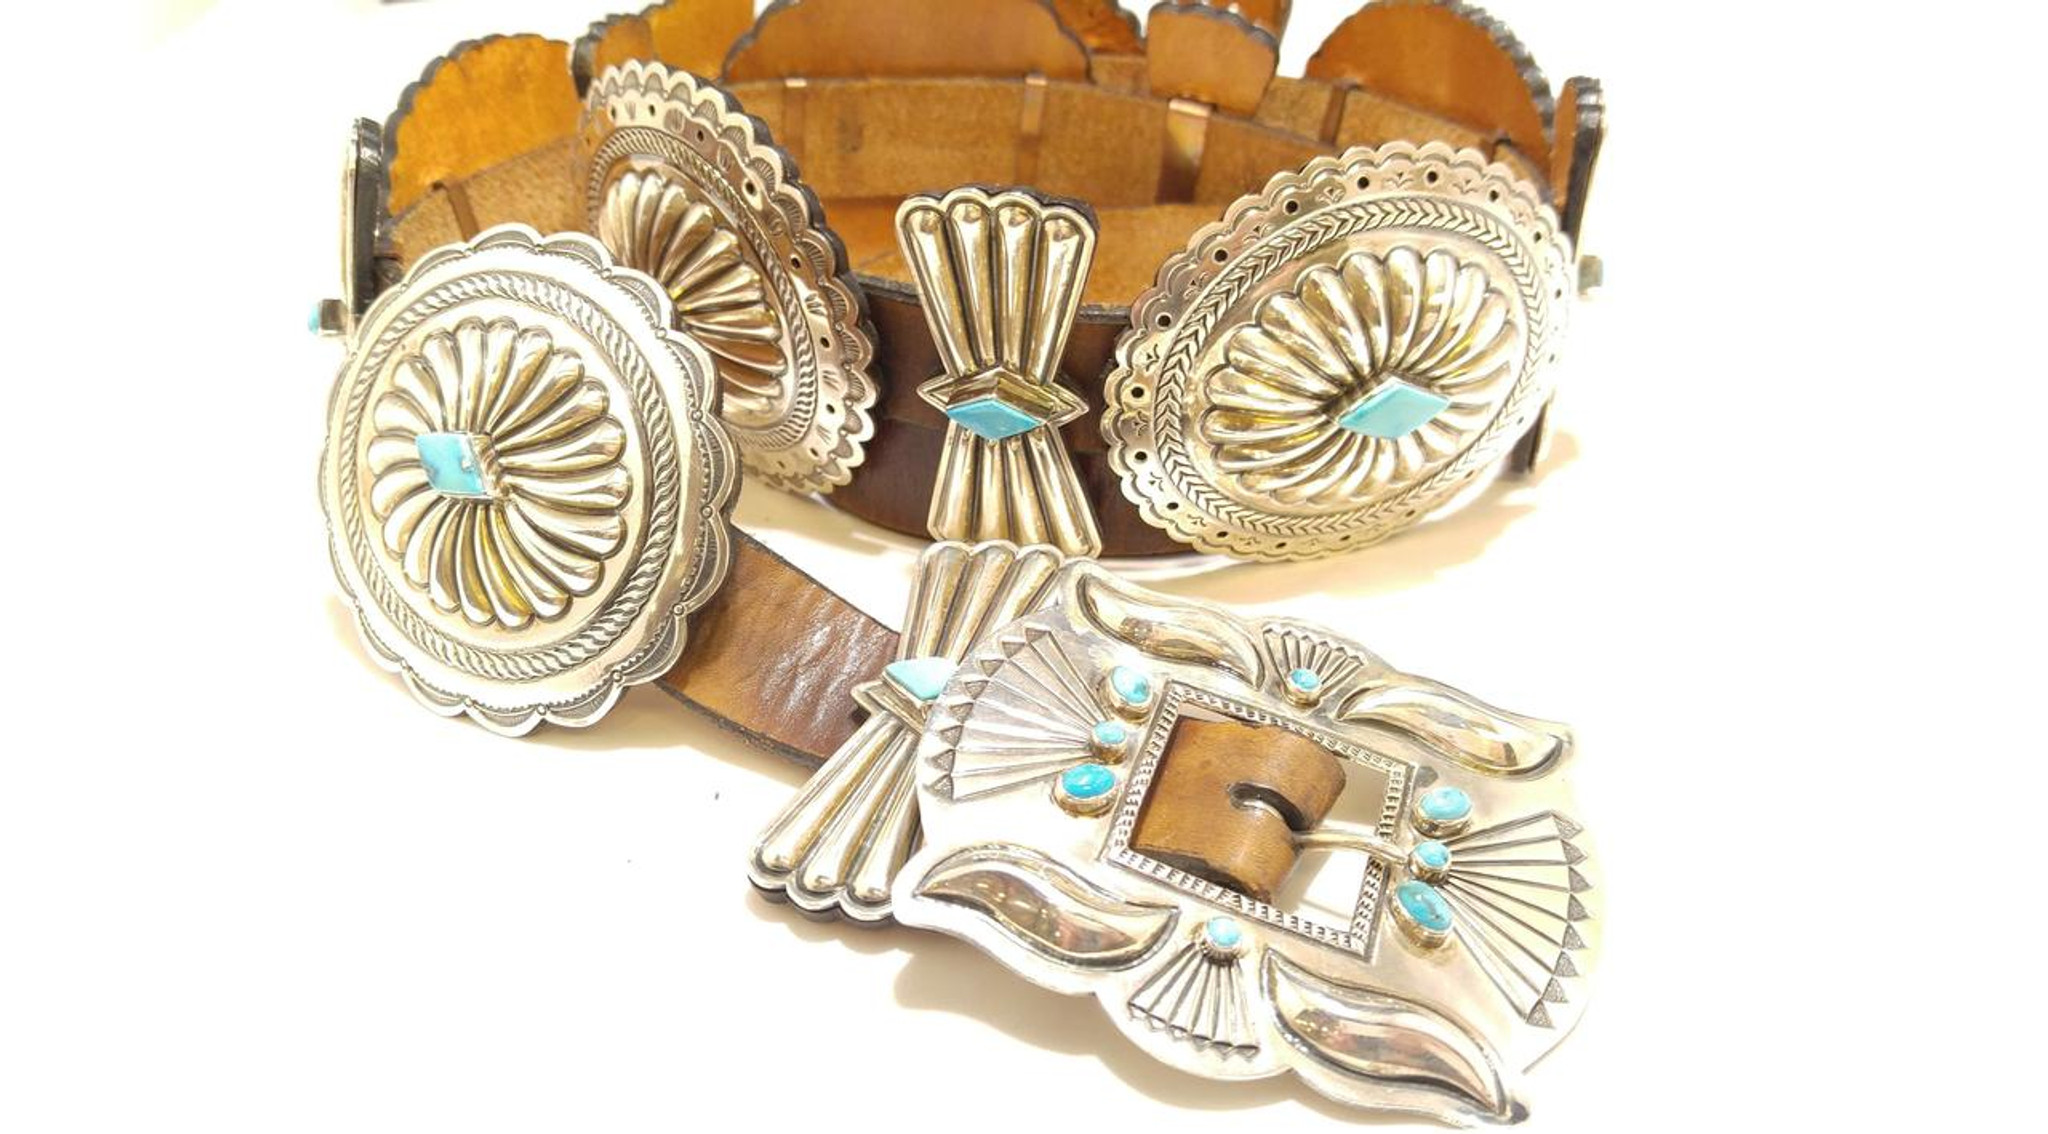 382e47a63ab7 ... Chaco Canyon Concho Turquoise Belt Buckle. Concho Belt .925 Sterling  Silver